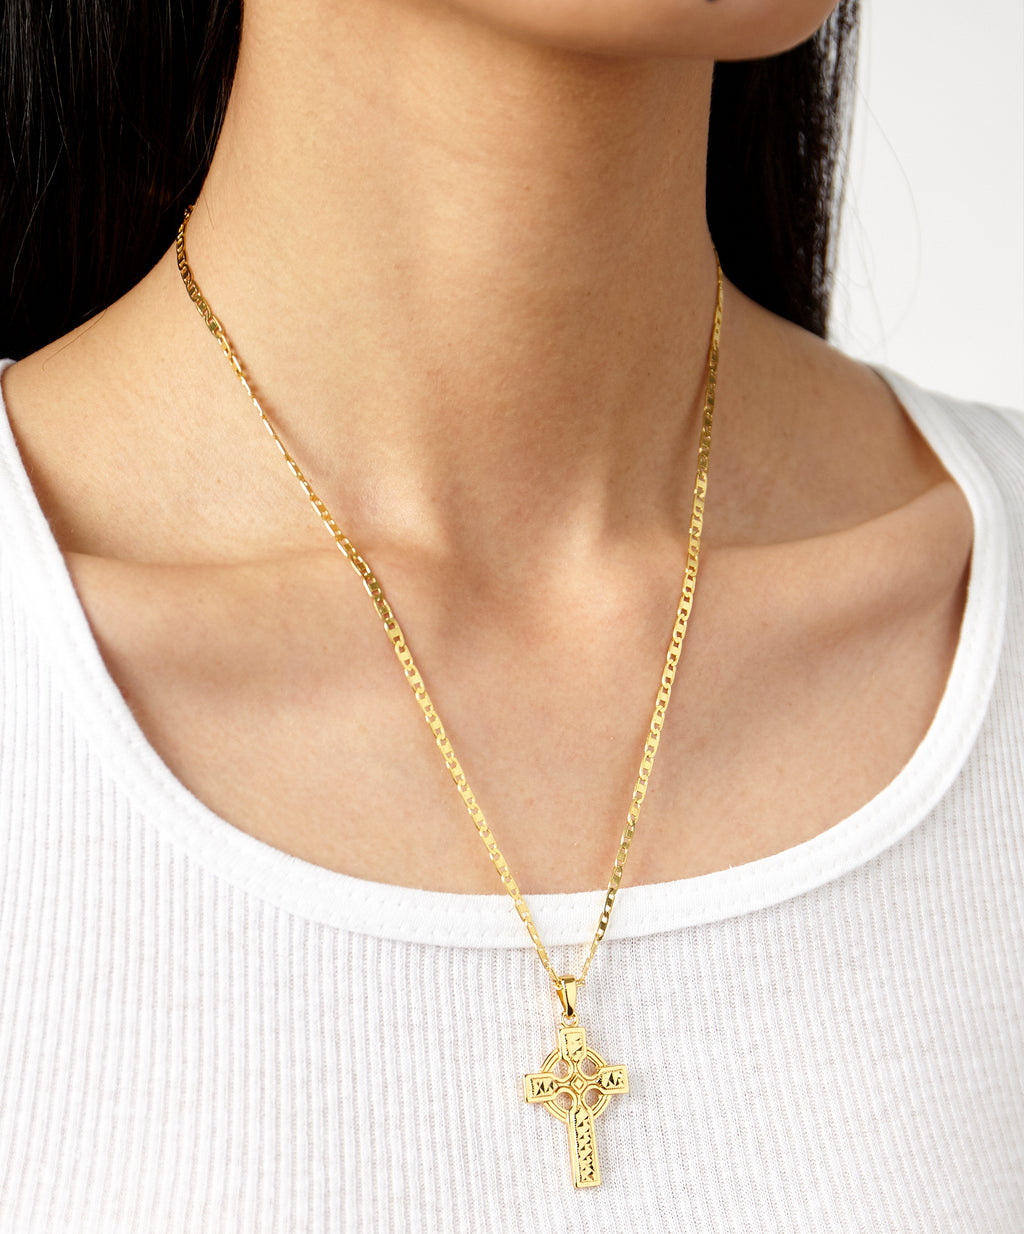 WESTMINSTER CROSS NECKLACE